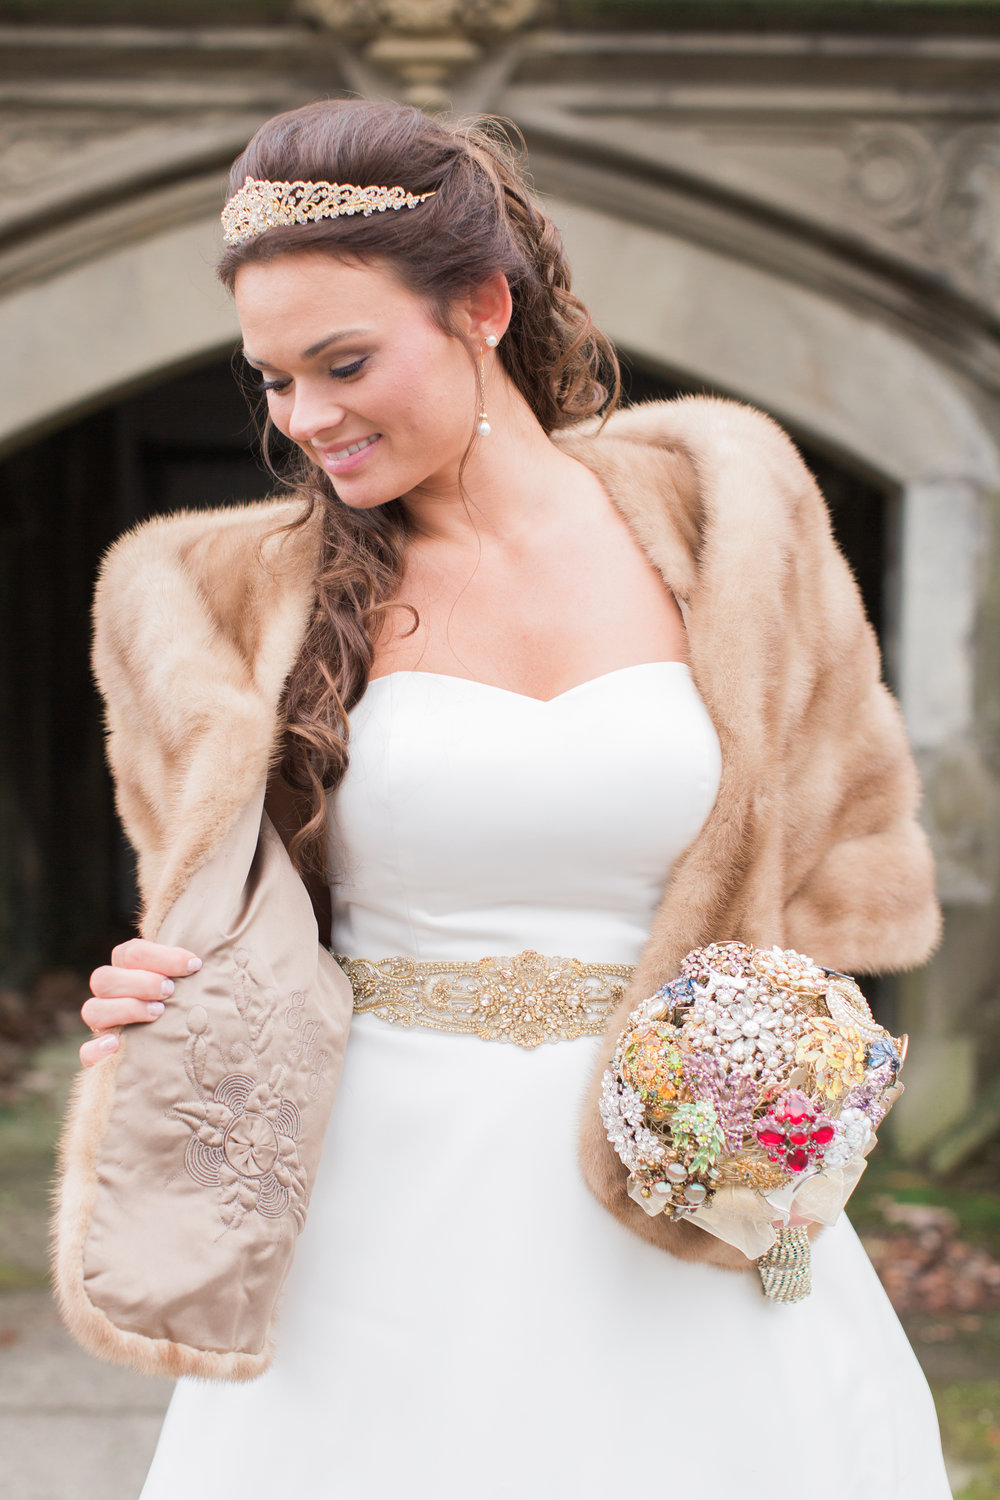 Sarah chose to wear her grandmothers mink fur coat for part of the day. She didn't know her grandmothers initials were beautifully embroidered inside until the day of. It was almost like she was meant to find it on the day of her wedding as if it was a sign from God to say don't worry she loves you. It still gives me chills to think about! Her bouquet was carefully put together and made up of all of her grandmothers and great grandmothers brooches. You can tell Sarah is an old soul and sentimental and did everything she could to incorporate those she loved.